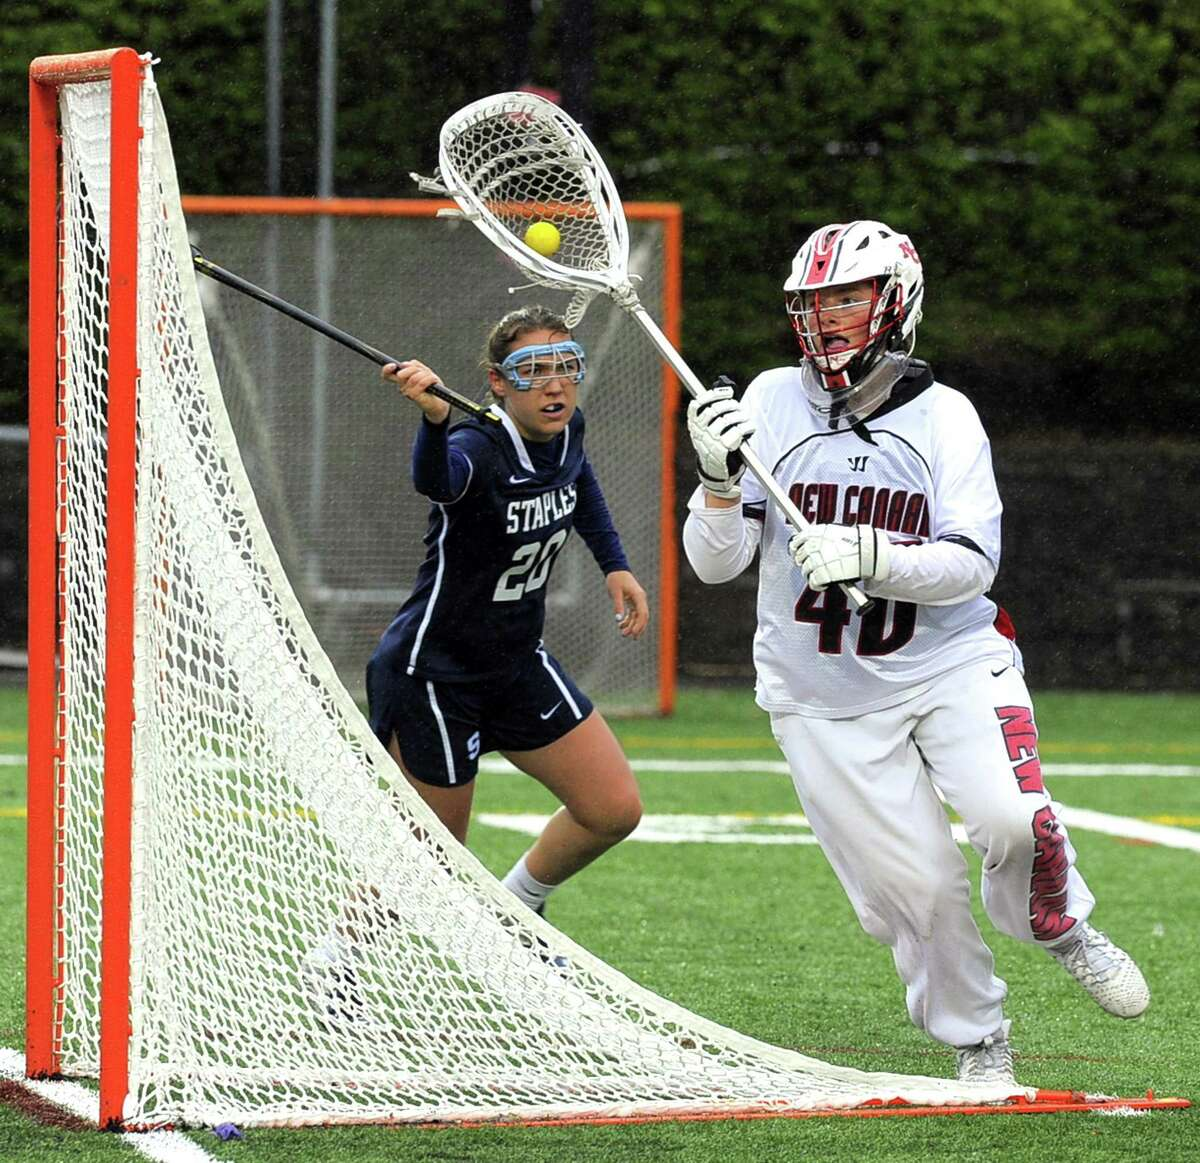 New Canaan goalie Caroline O'Dea looks to pass forward following a save against Staples in a varsity girls lacrosse game at New Canaan High School Dunning Field on Tuesday, April 25, 2017. New Canaan defeated Staples 16-8.